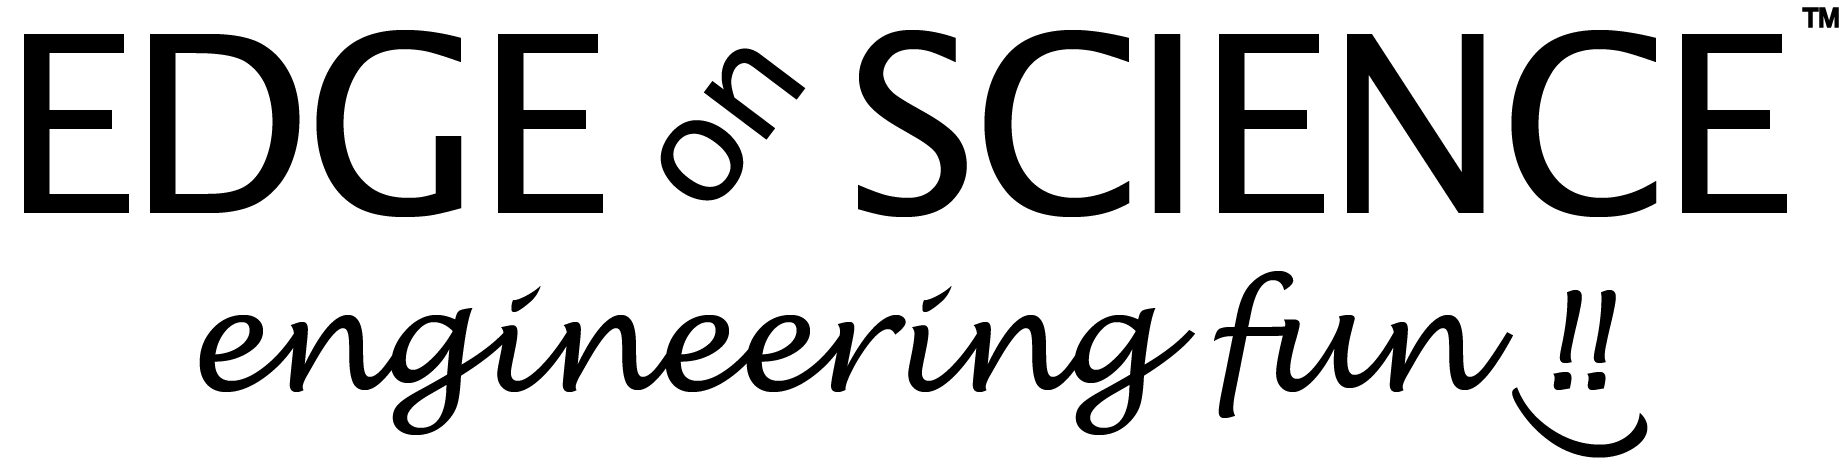 EDGE on SCIENCE logo for camp fair exhibitor page.png